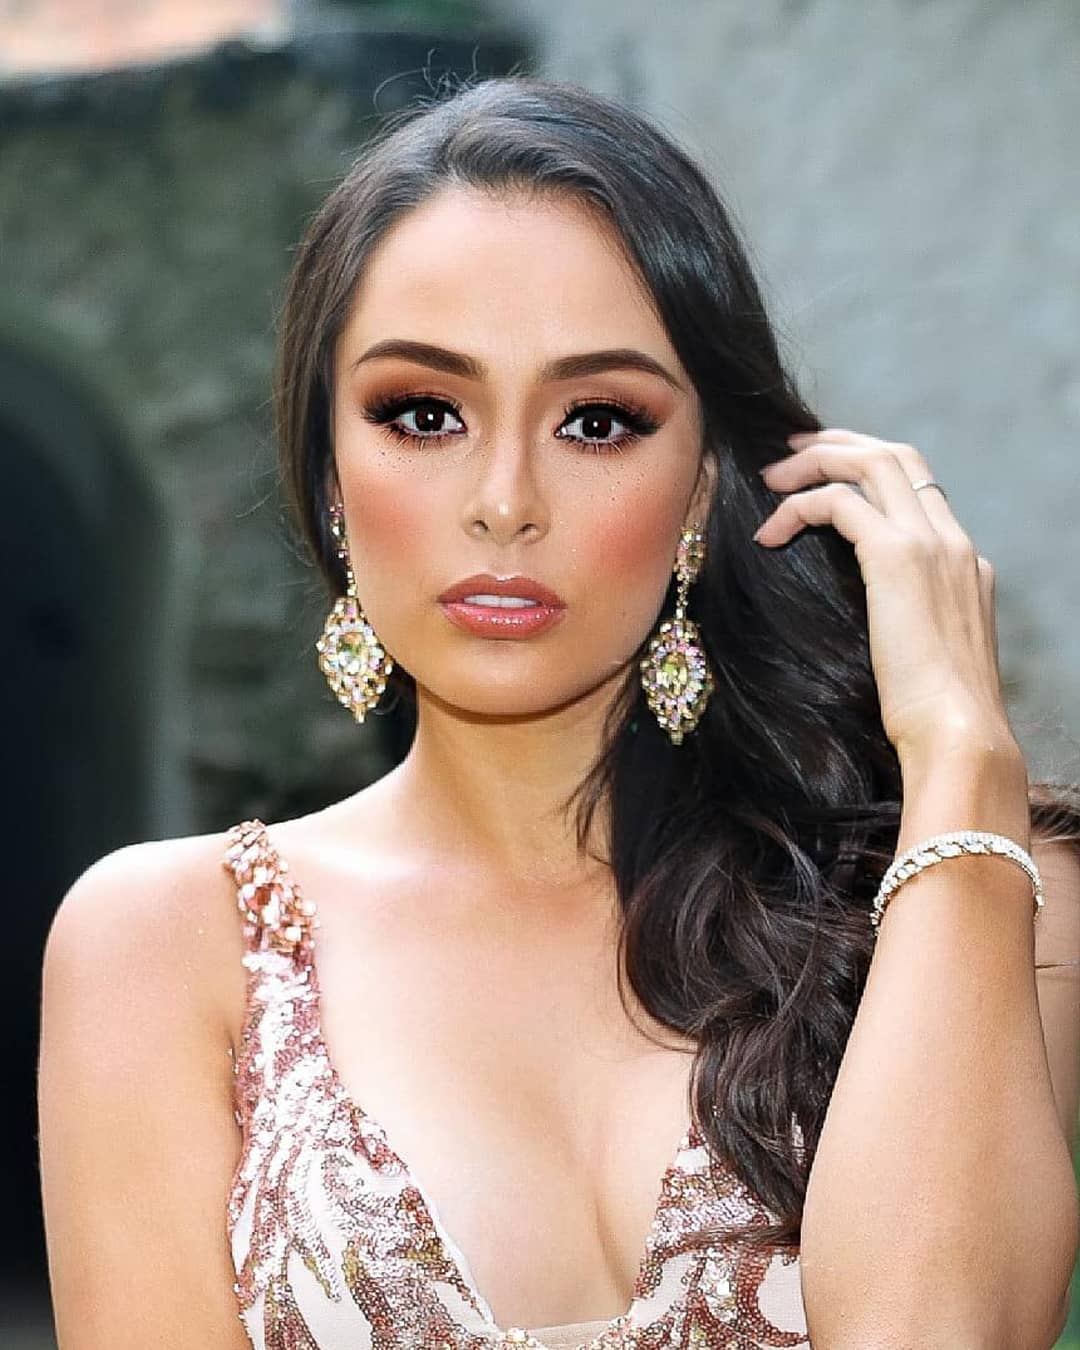 ashley alvidrez, top 12 de miss world 2019. - Página 5 69875910